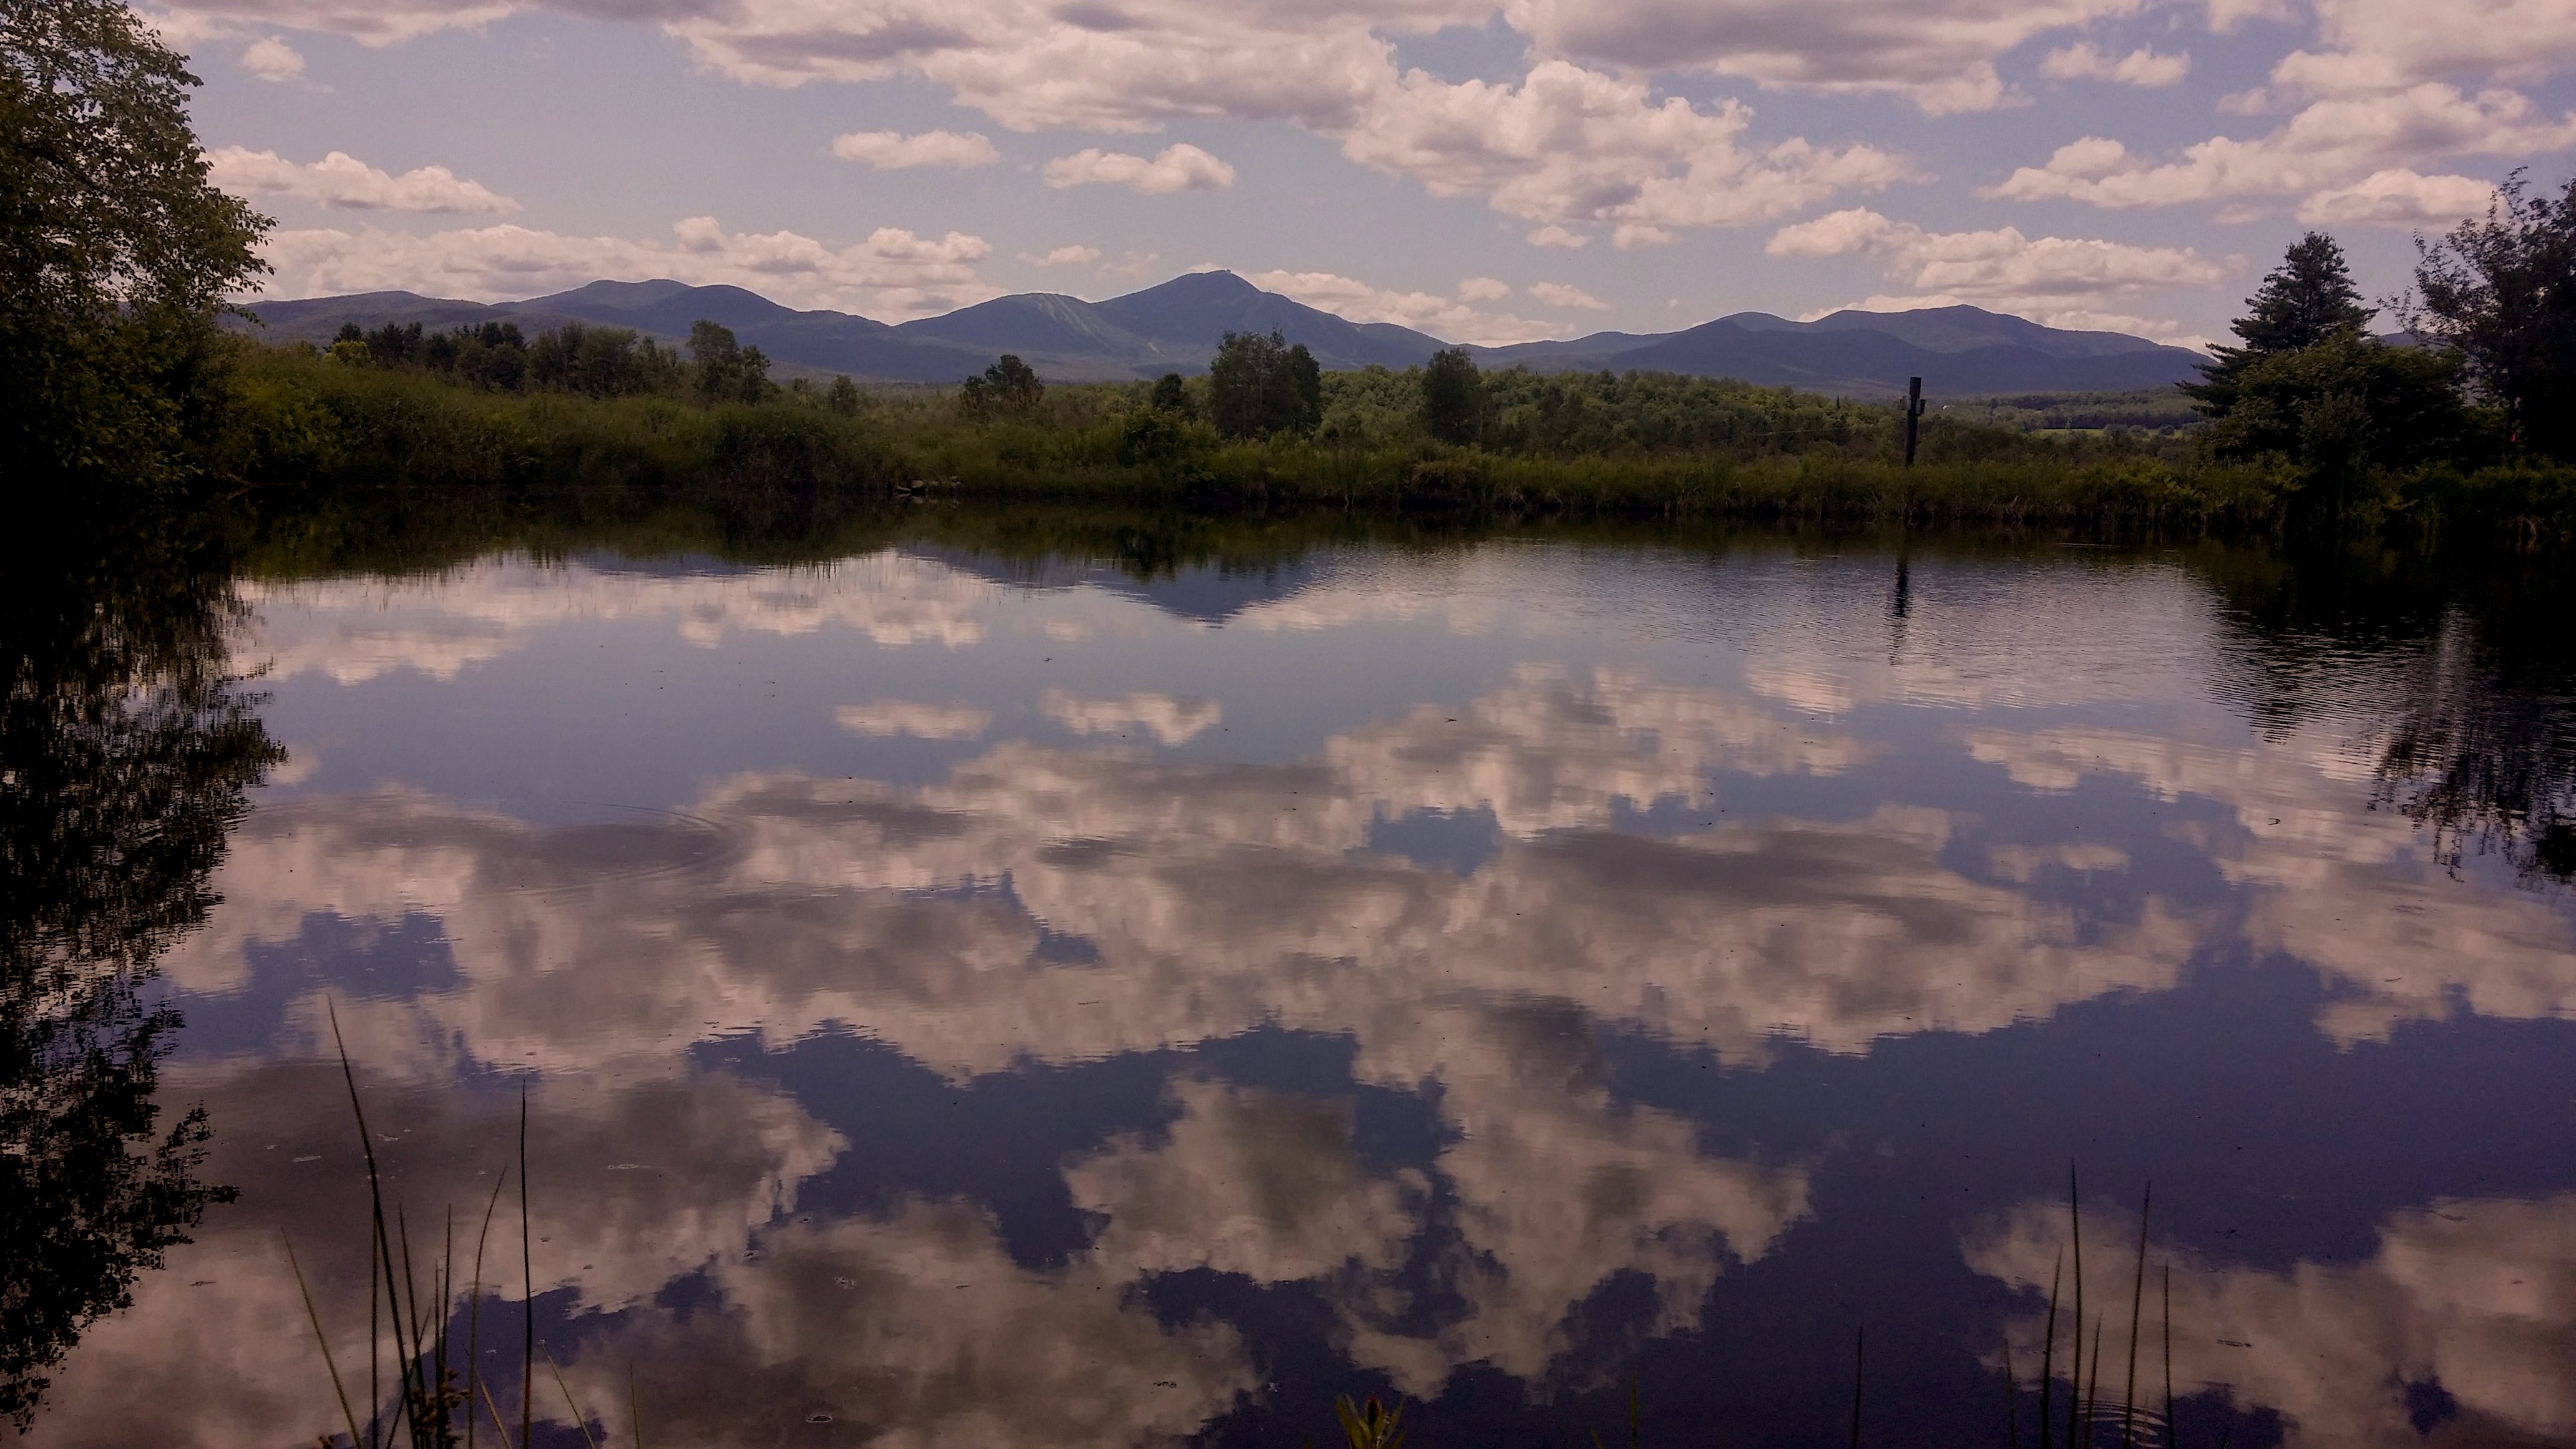 20140711_Pond_under_clouds_copy.jpg